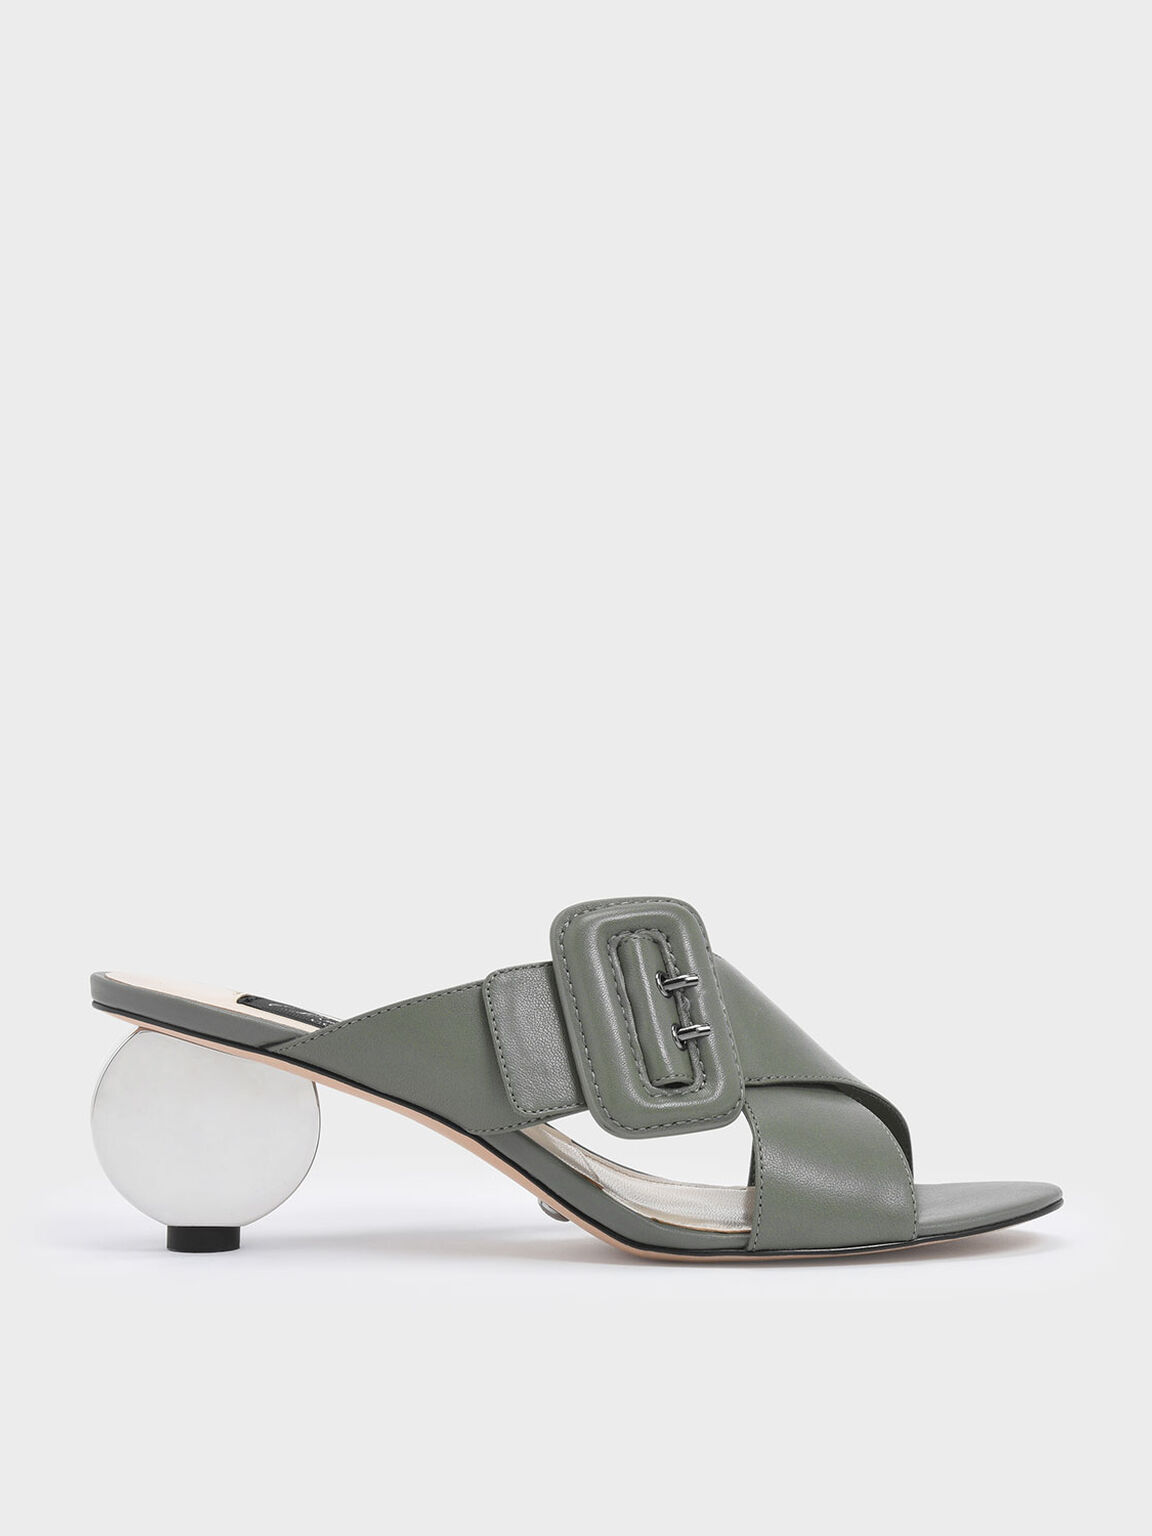 Sculptural Heel Leather Slide Sandals, Sage Green, hi-res